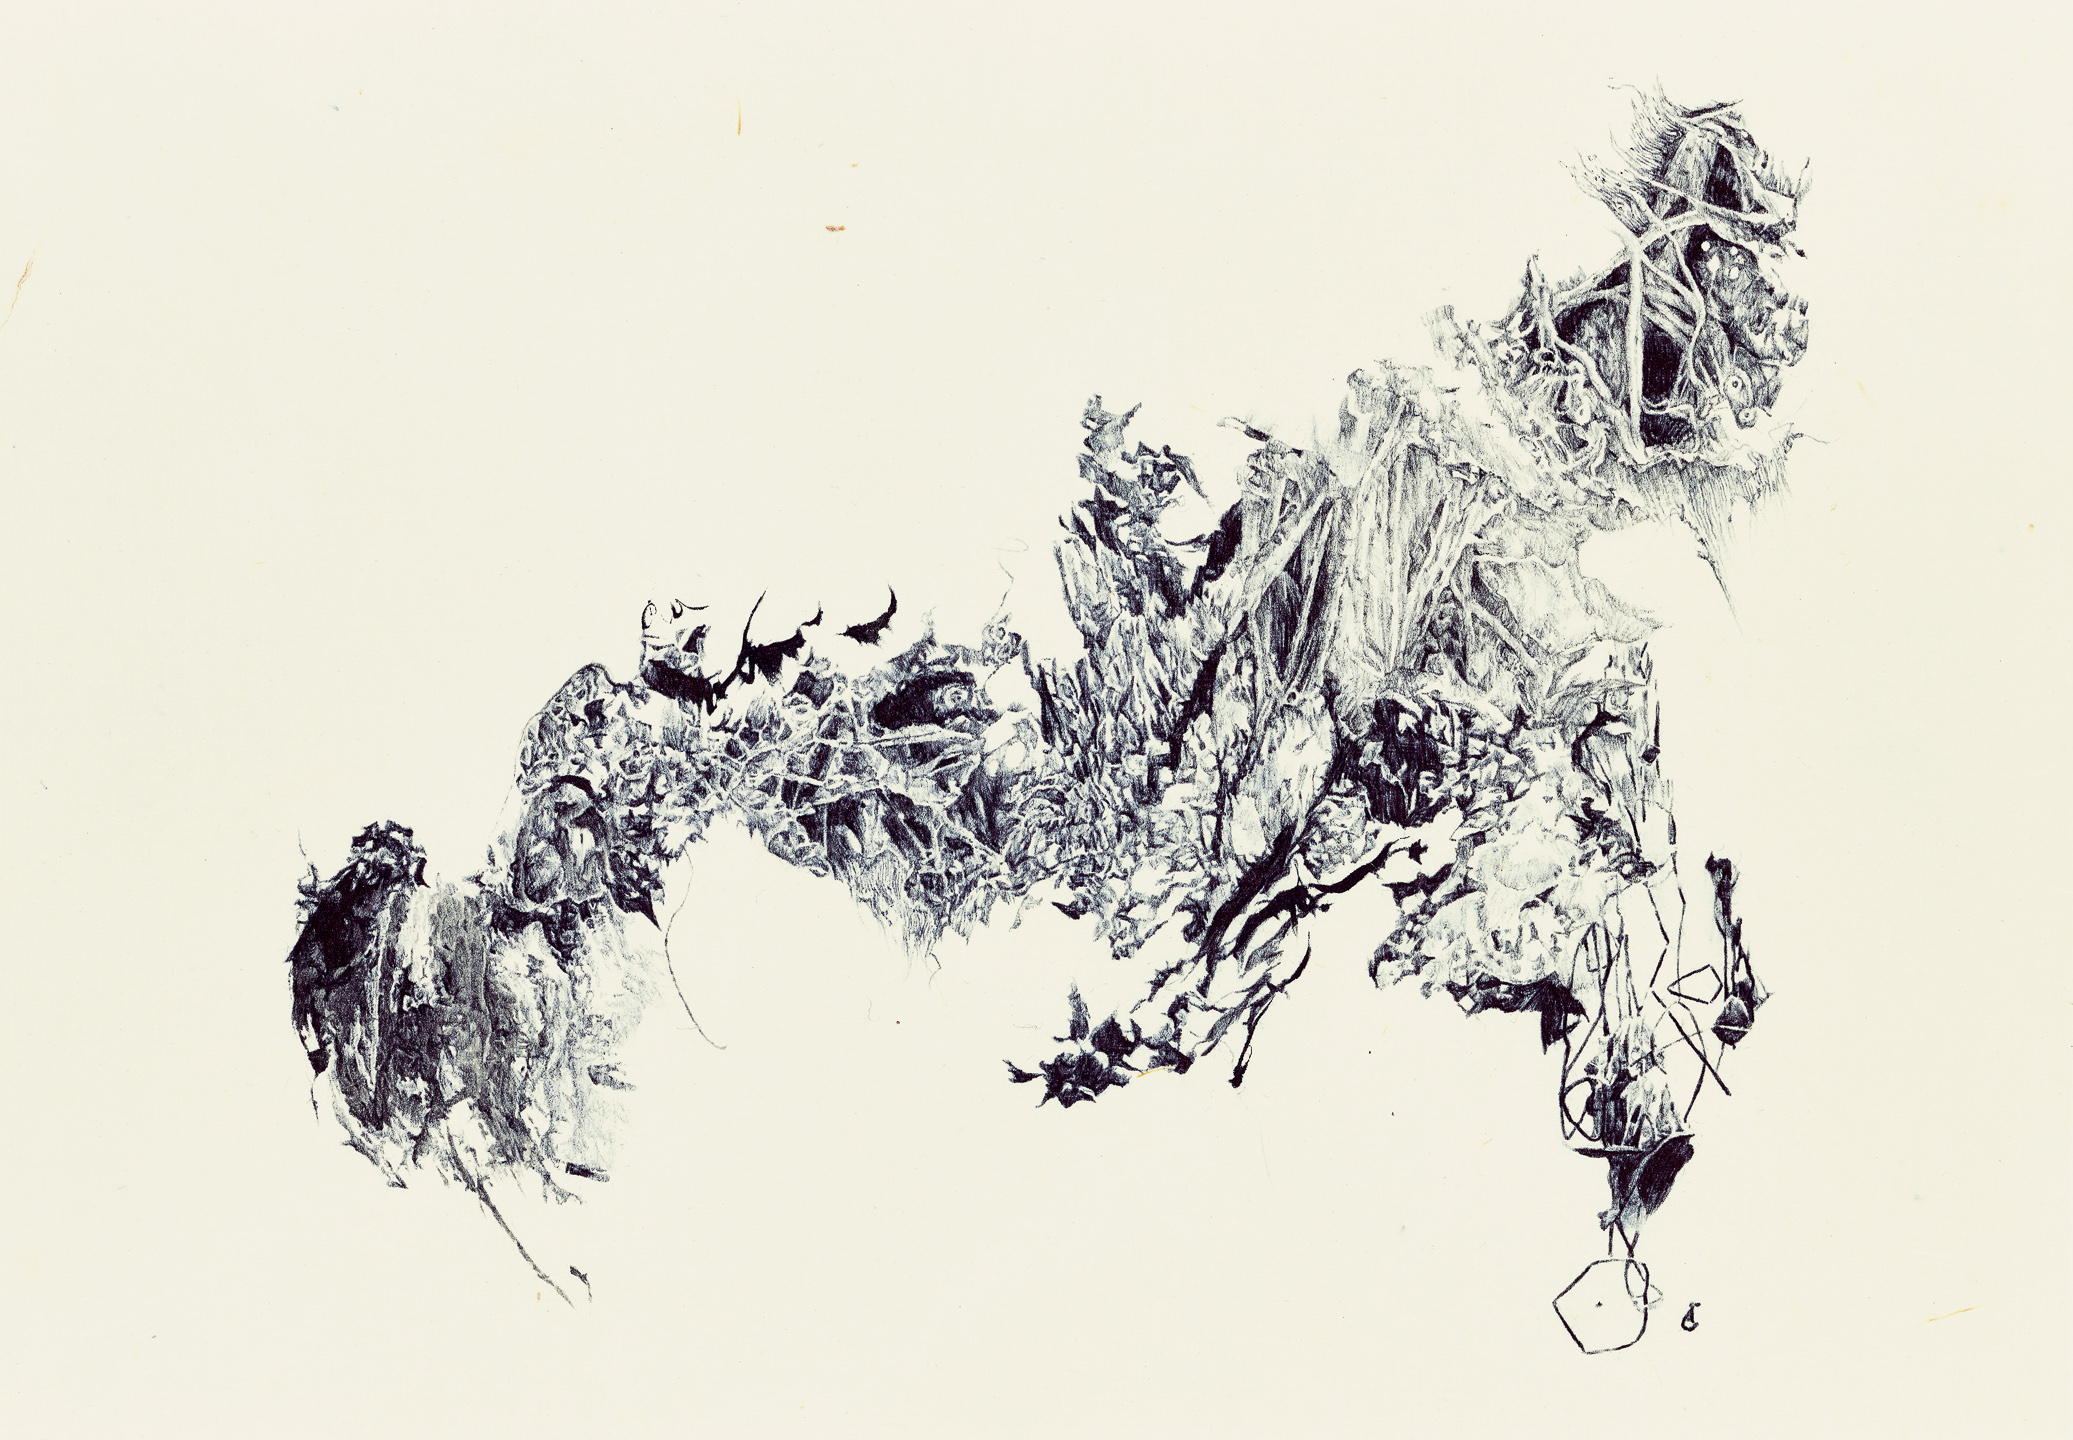 A moment of truth 36, ball pen on paper, 27cm (height) x 38.5cm (width), 2014